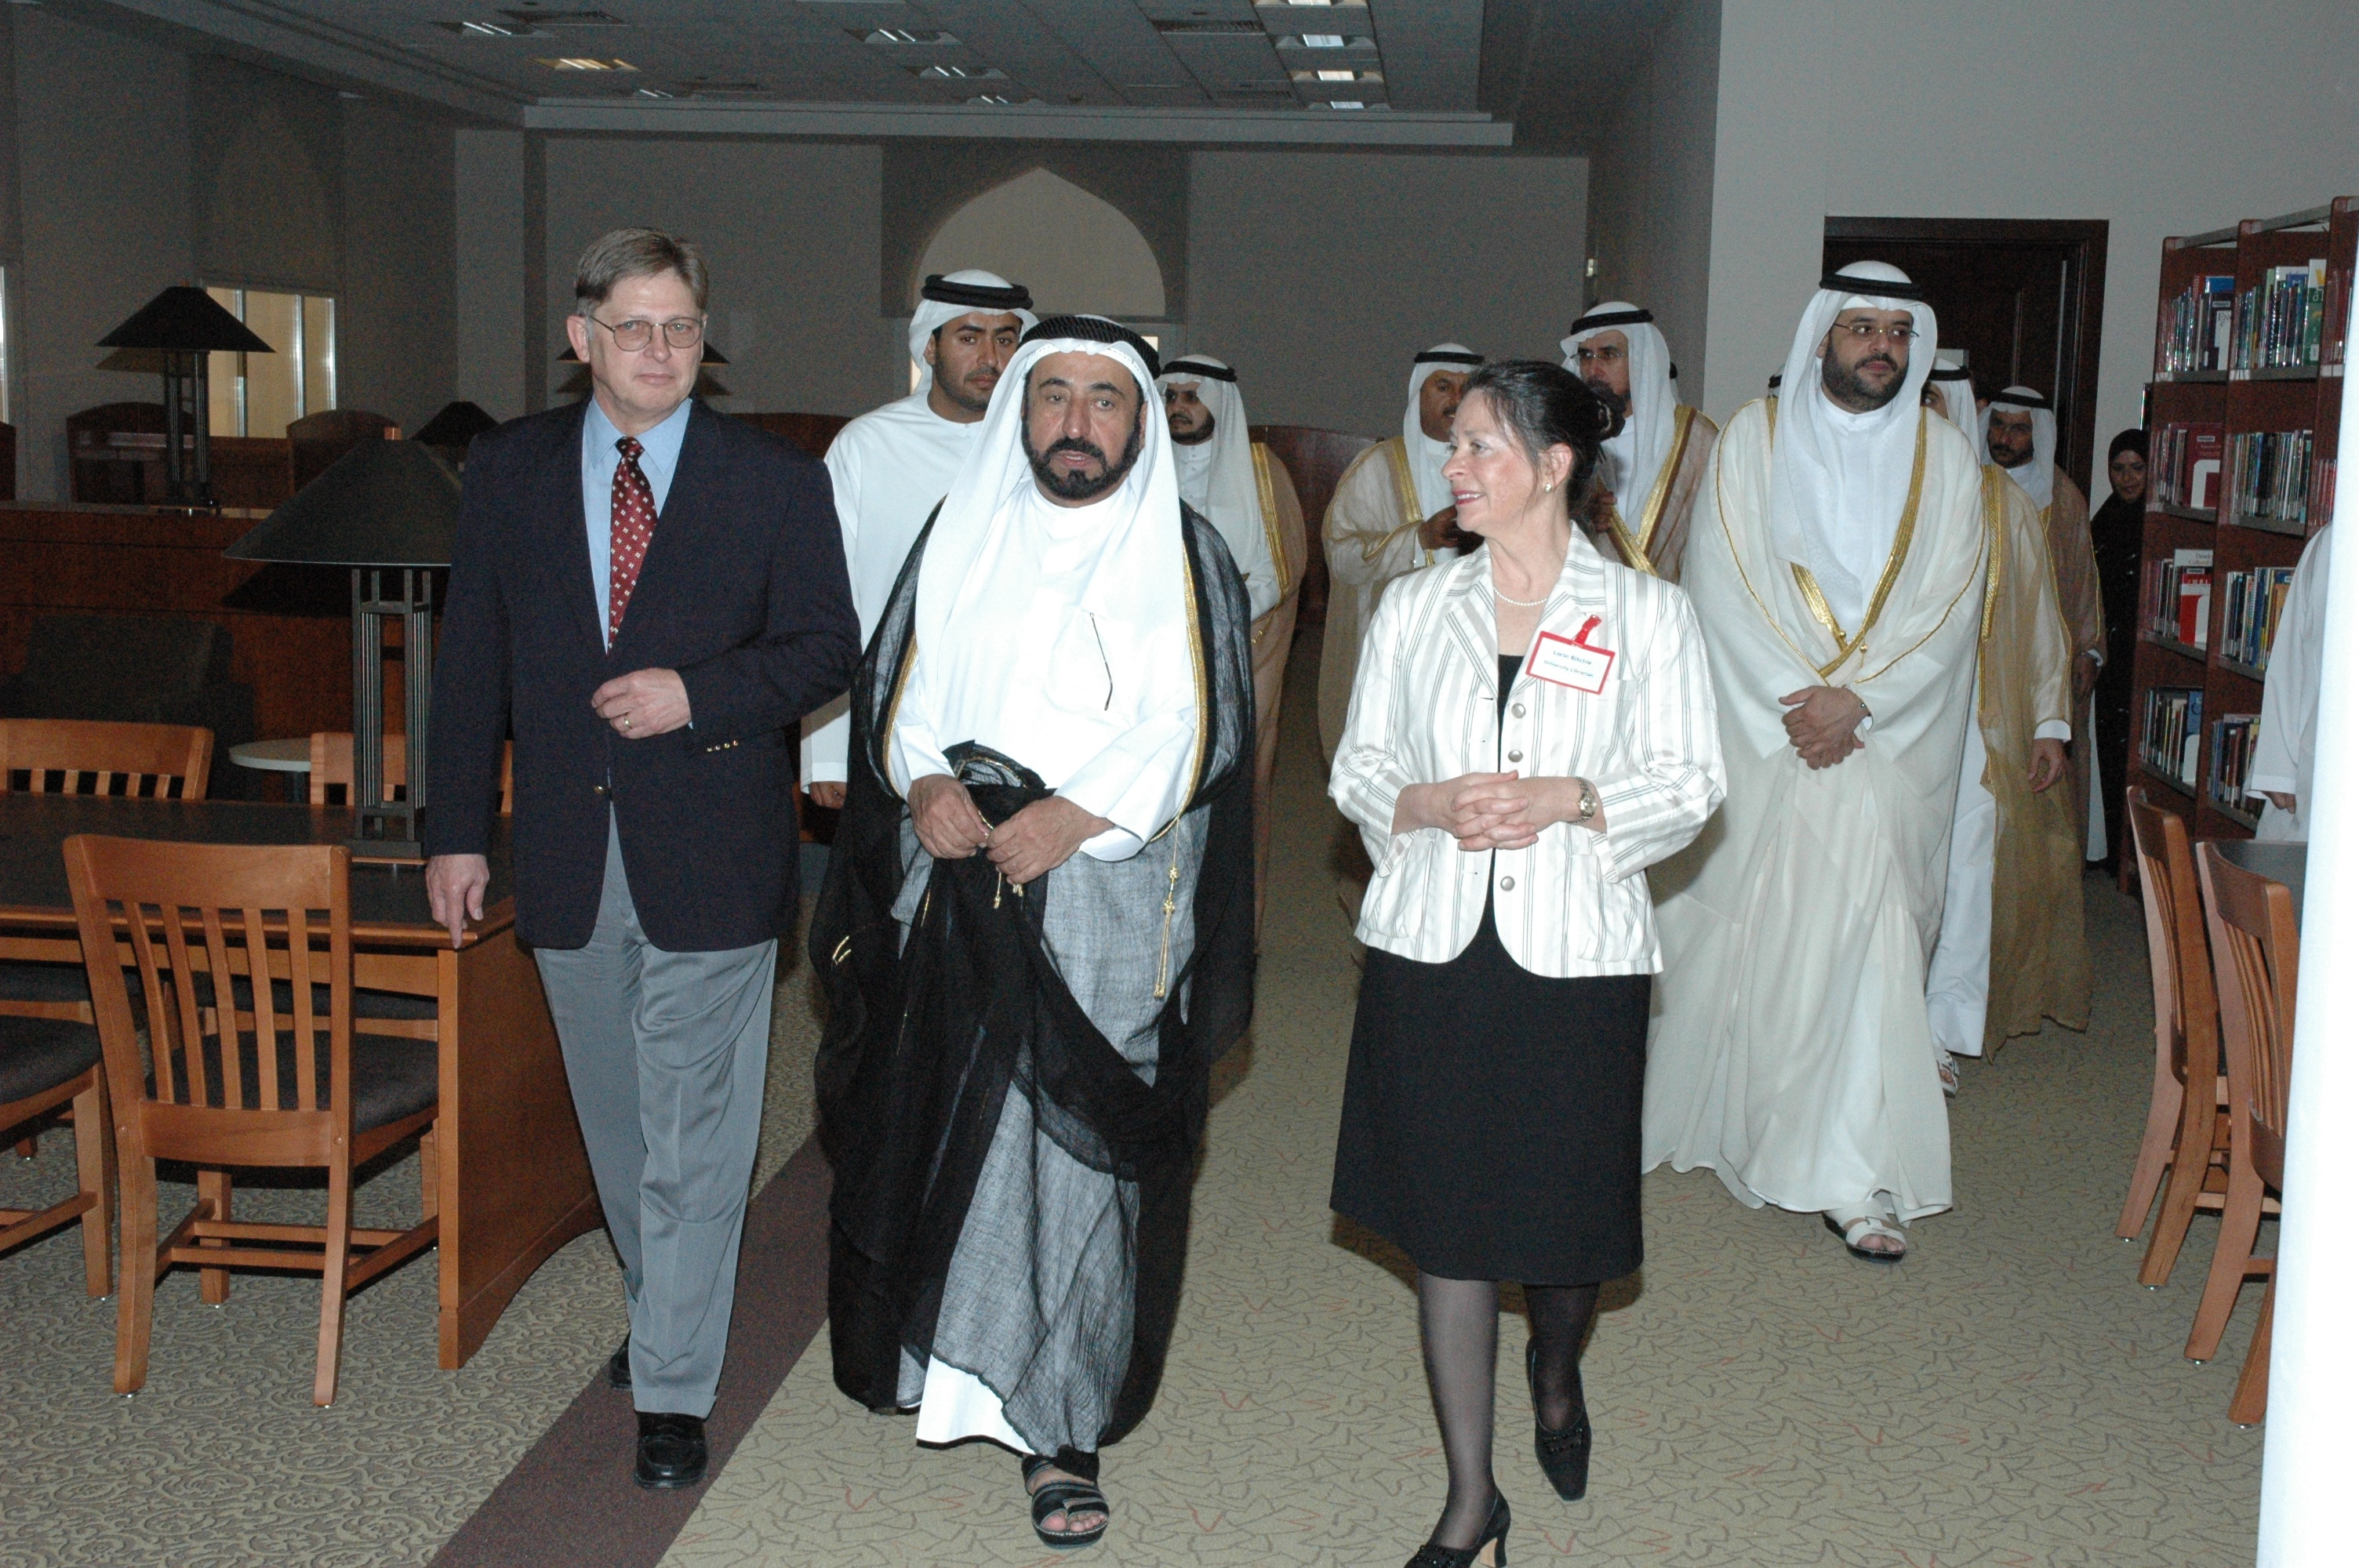 American_University_of_Sharjah_Library_4.jpg